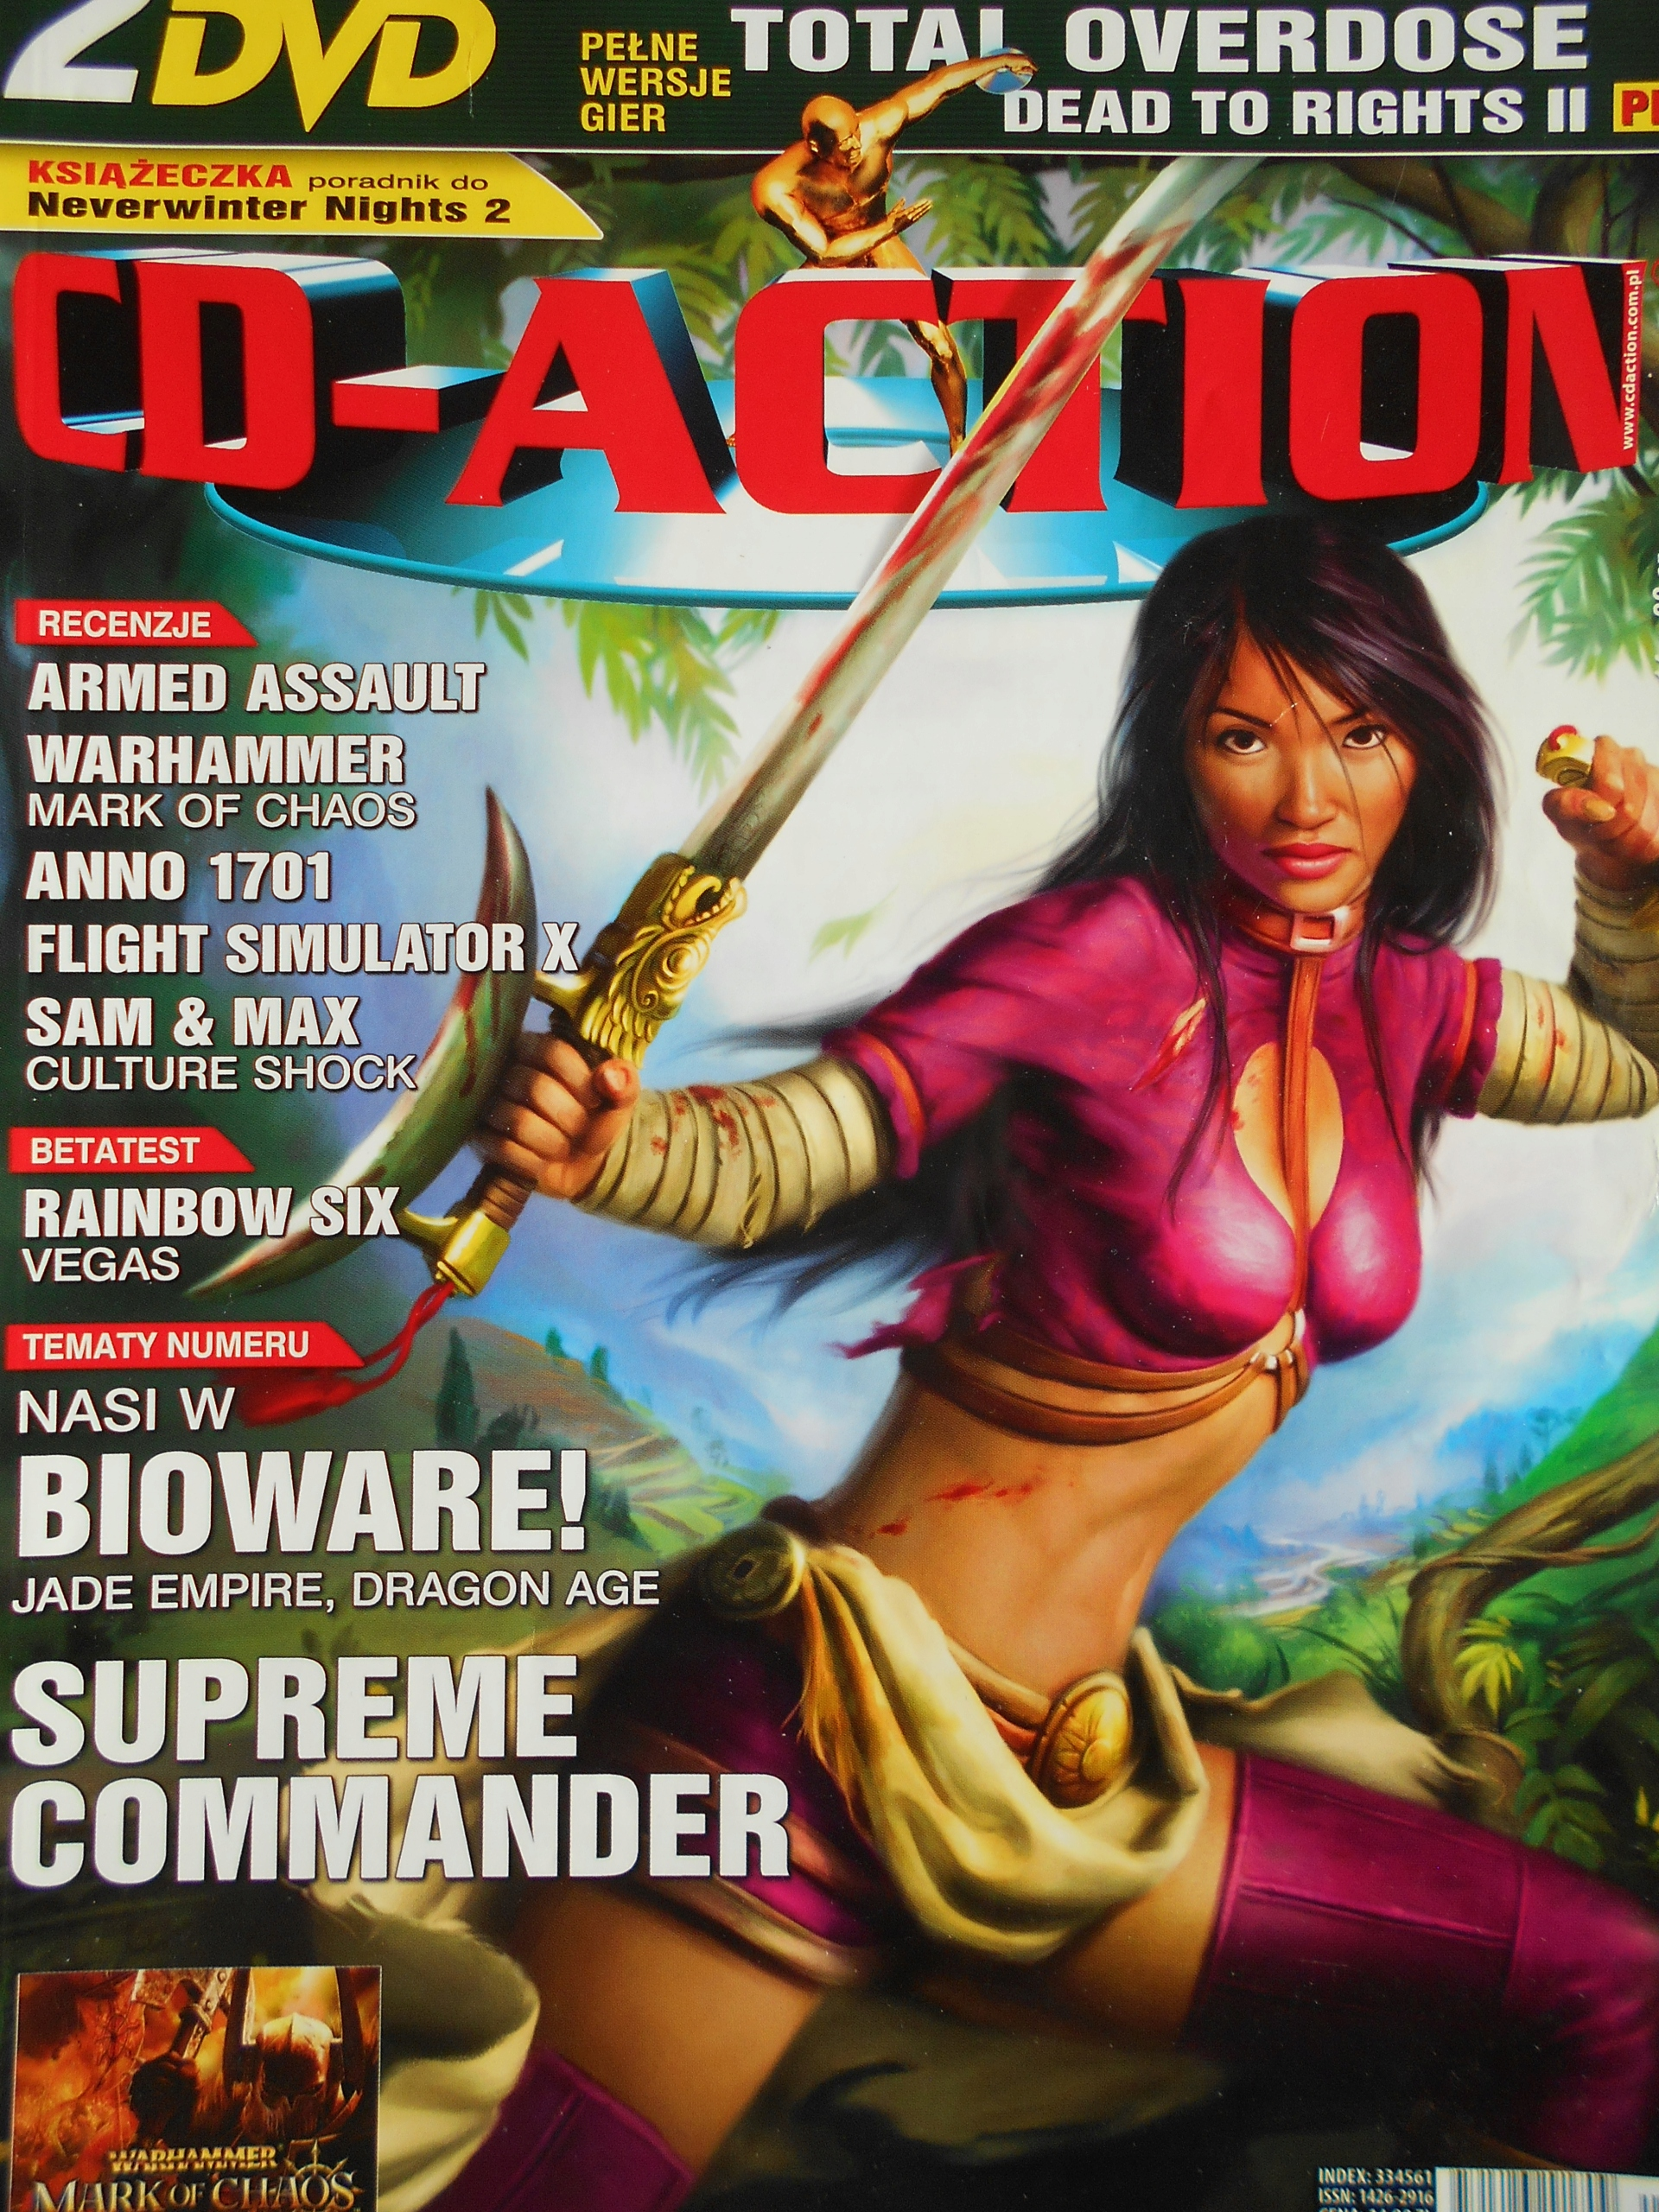 CD-ACTION * NR 01 / 2007